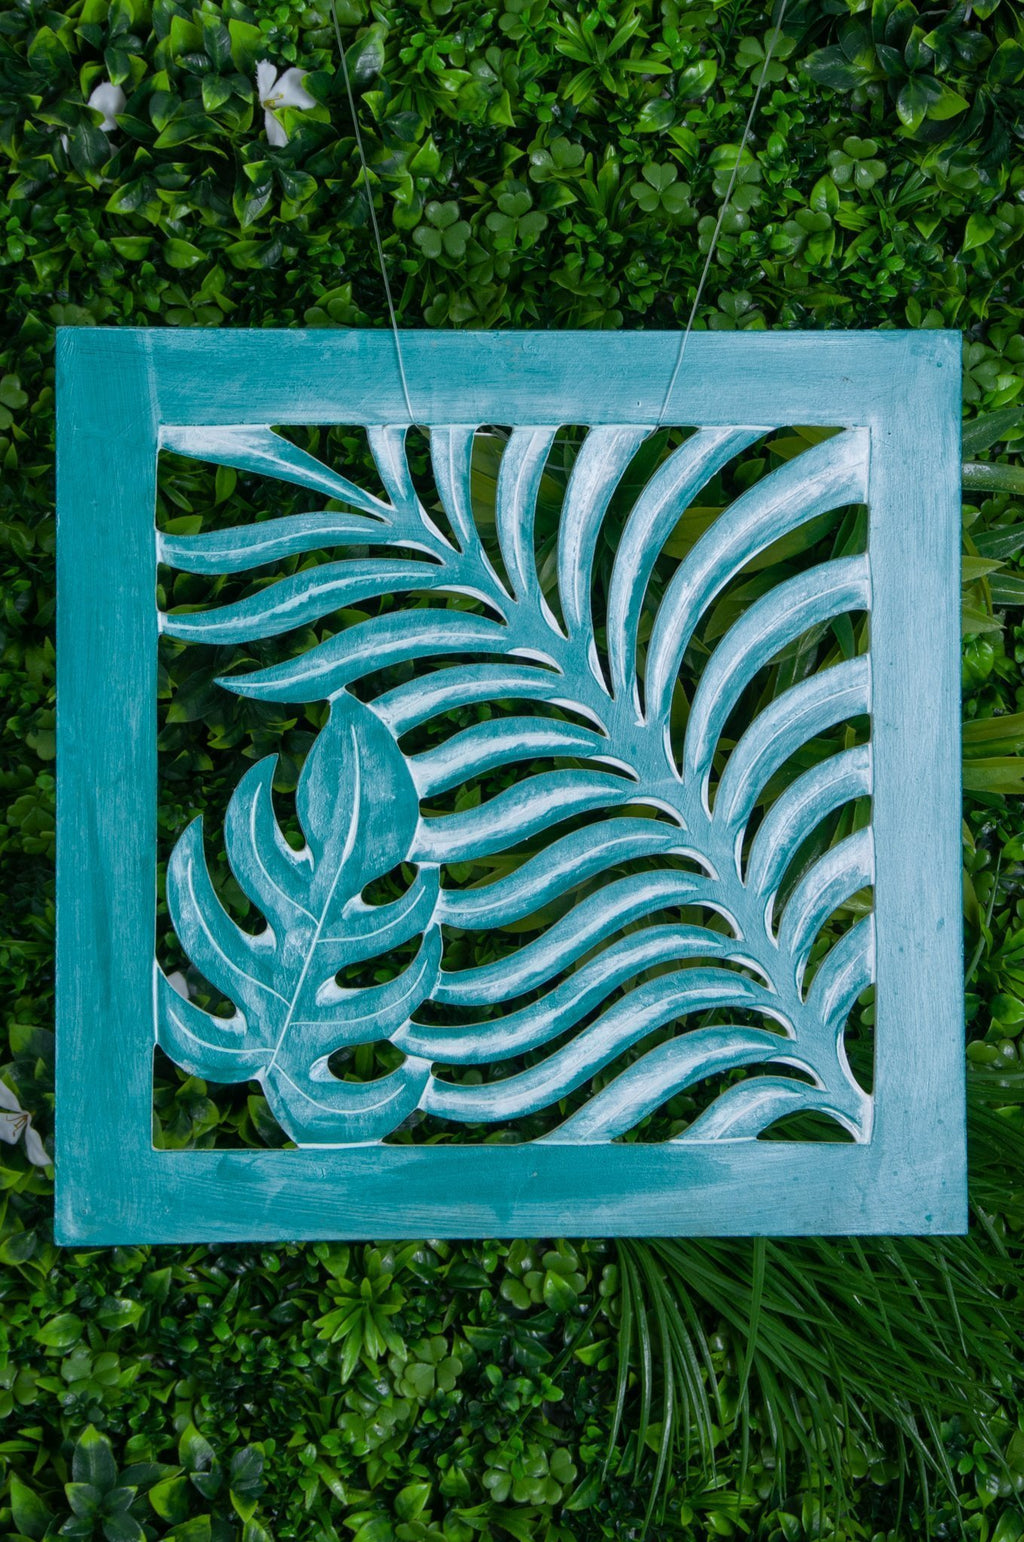 VVLH111 - SQUARE WOOD FERN PANEL 50 x 50cm - GREEN WASH